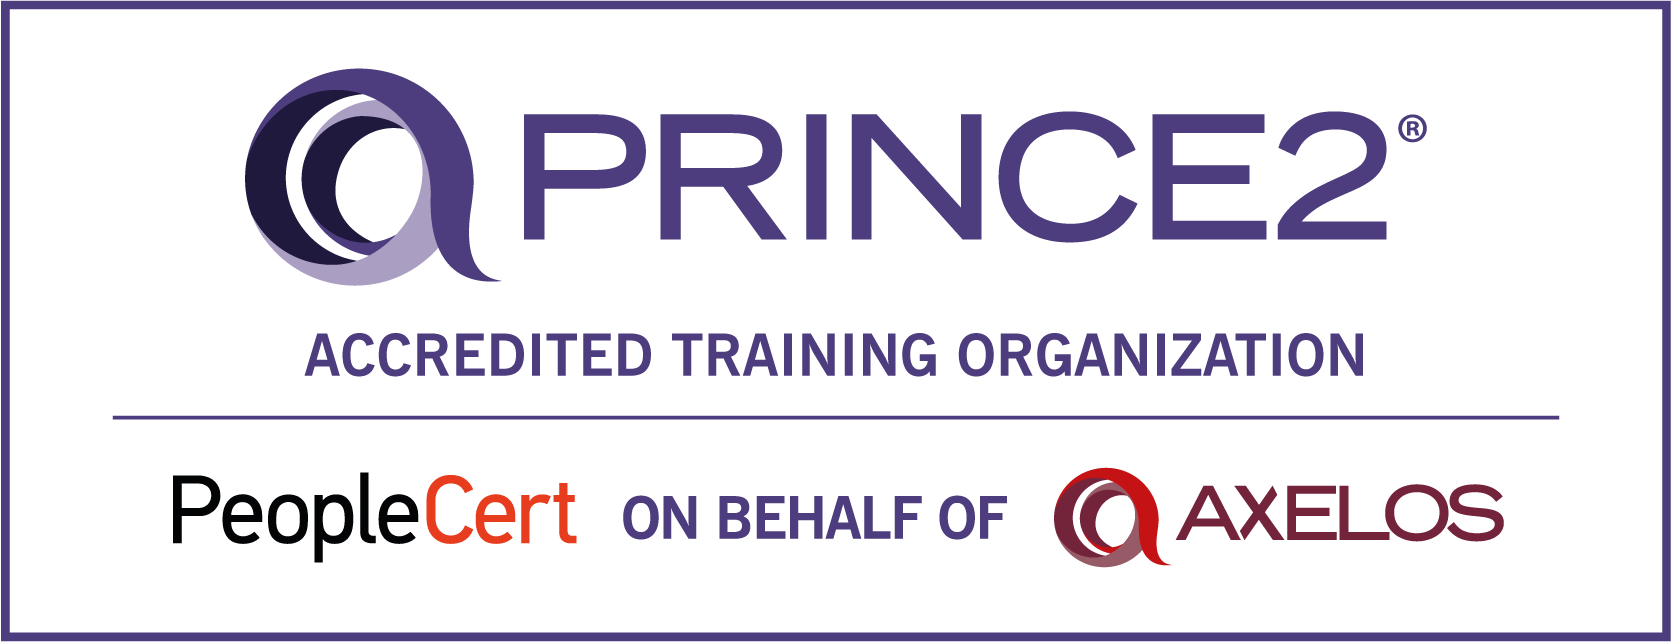 prince2 online, prince2 online certification, prince2 online course, prince2 e-learning